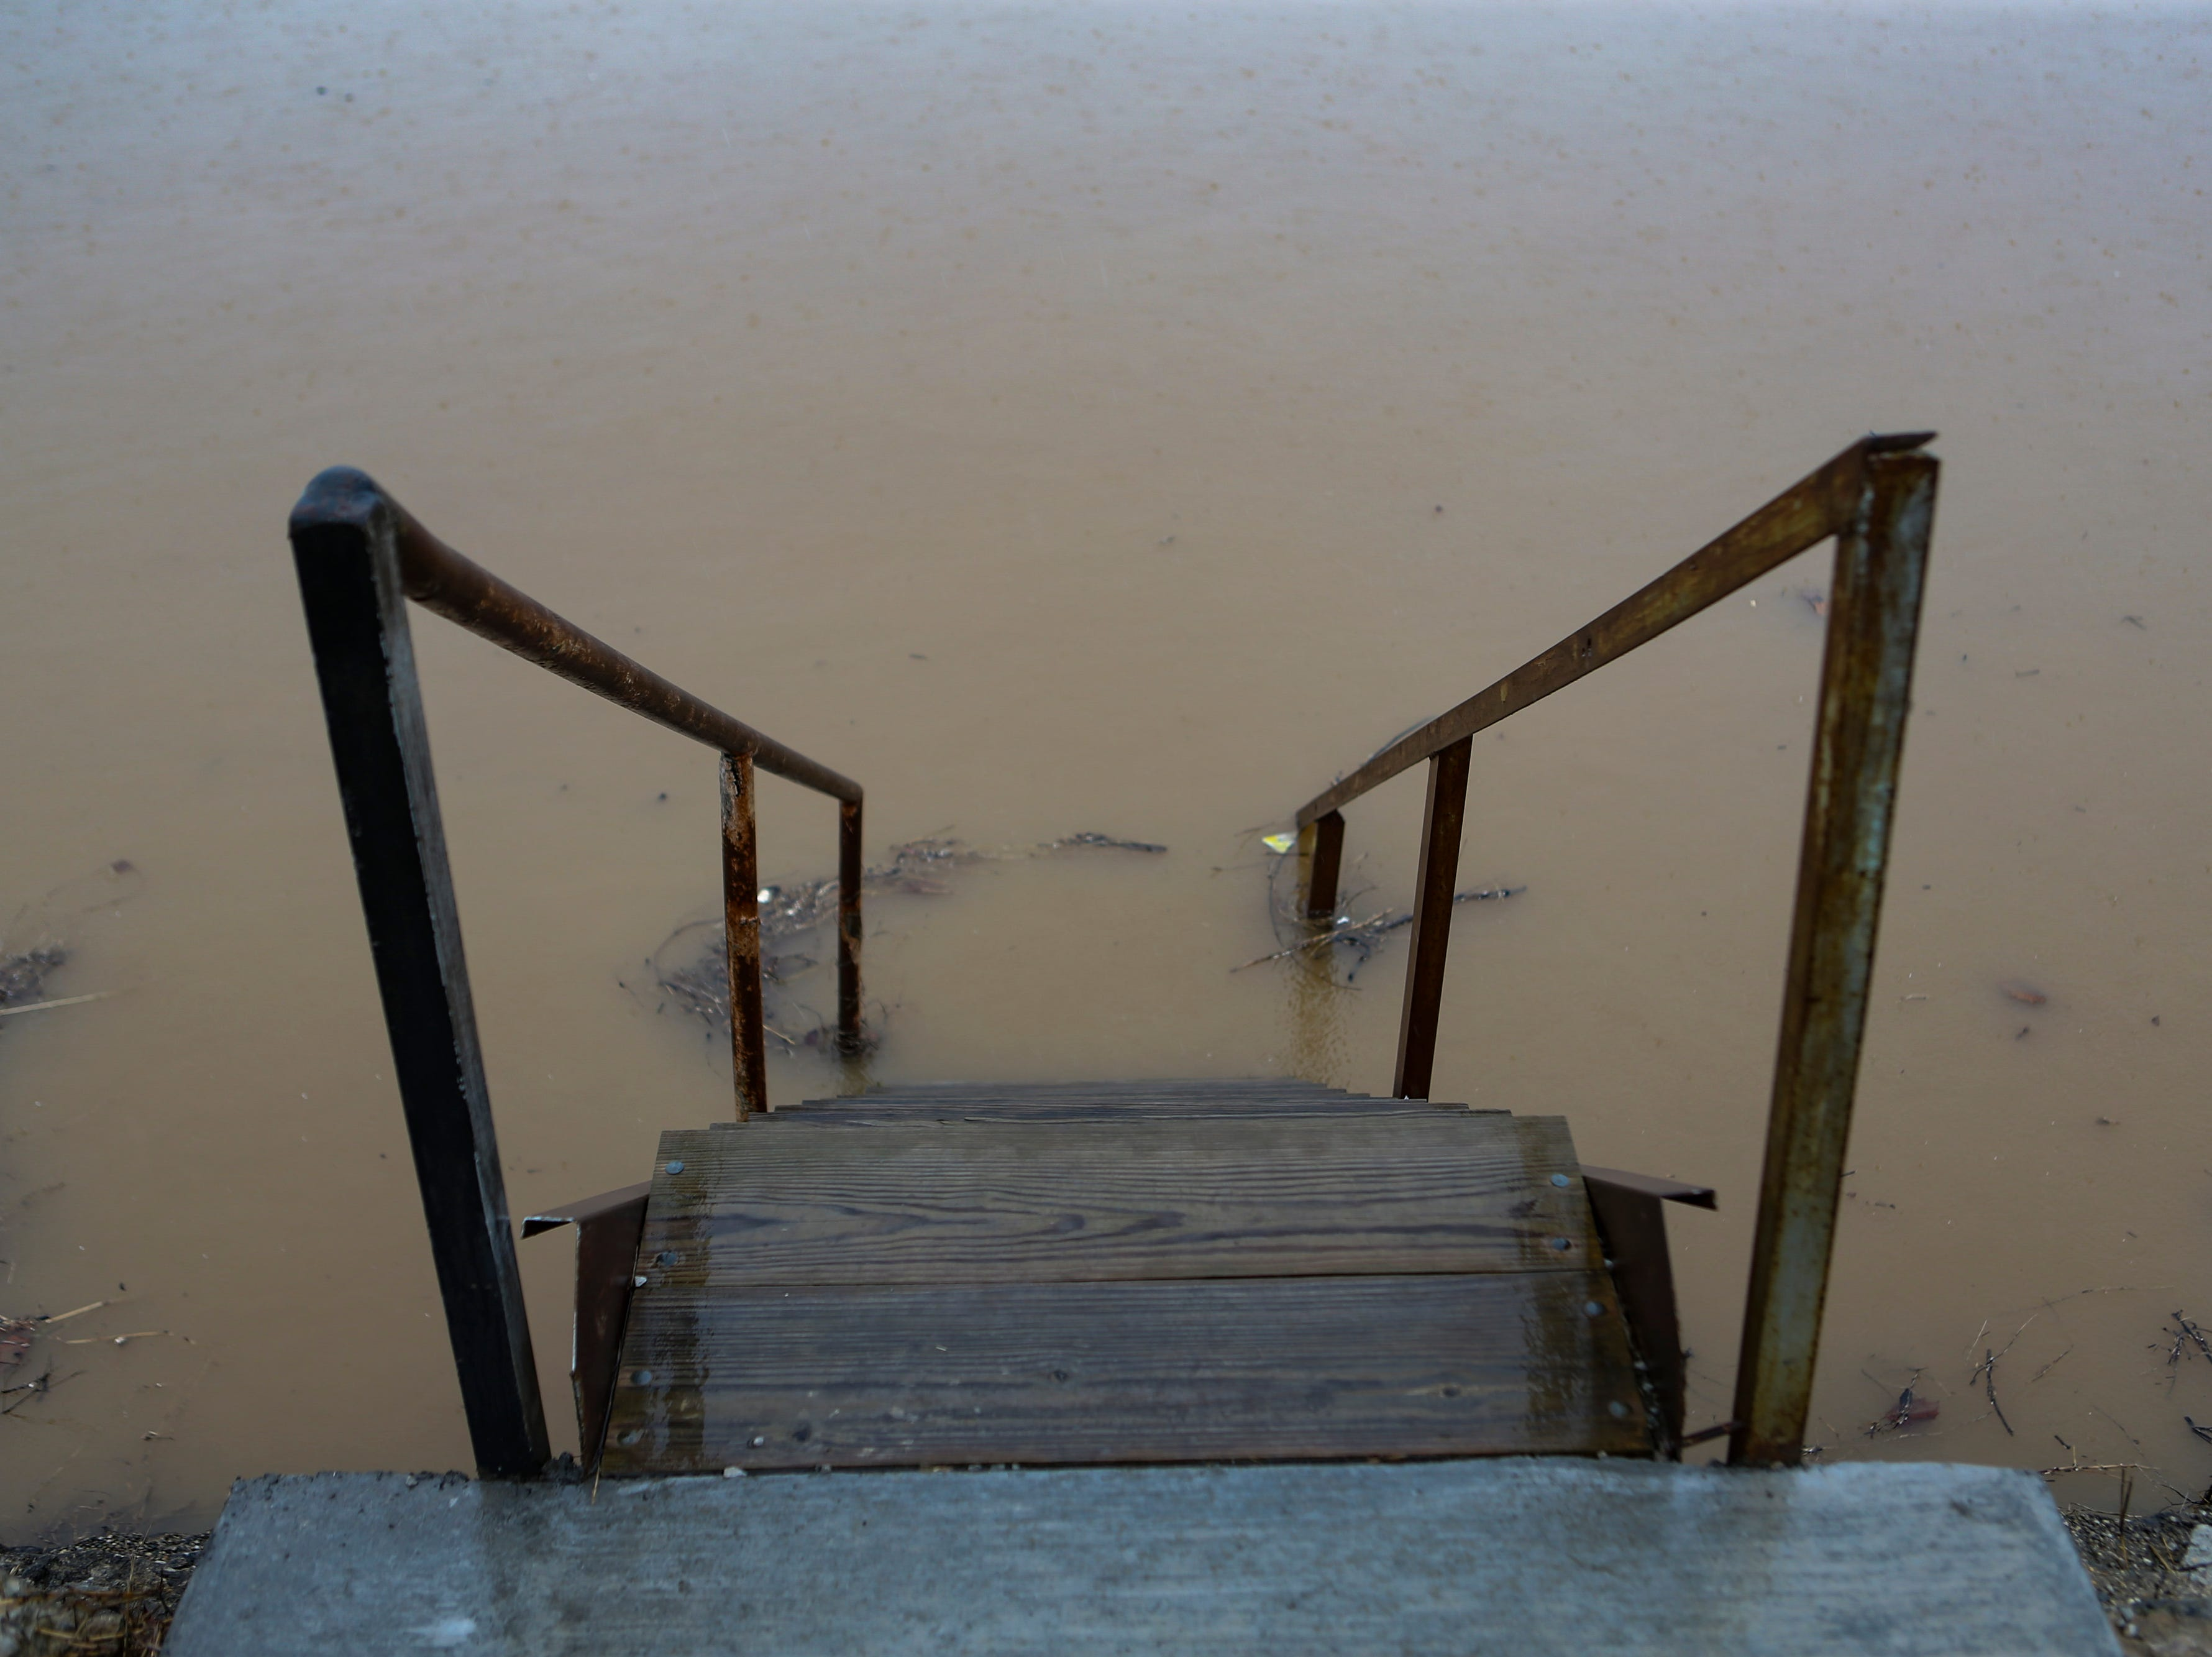 Water rises up over stairways along the river in Utica, Ind. on Monday as the area braces for high river waters and flooding. Feb. 11, 2019